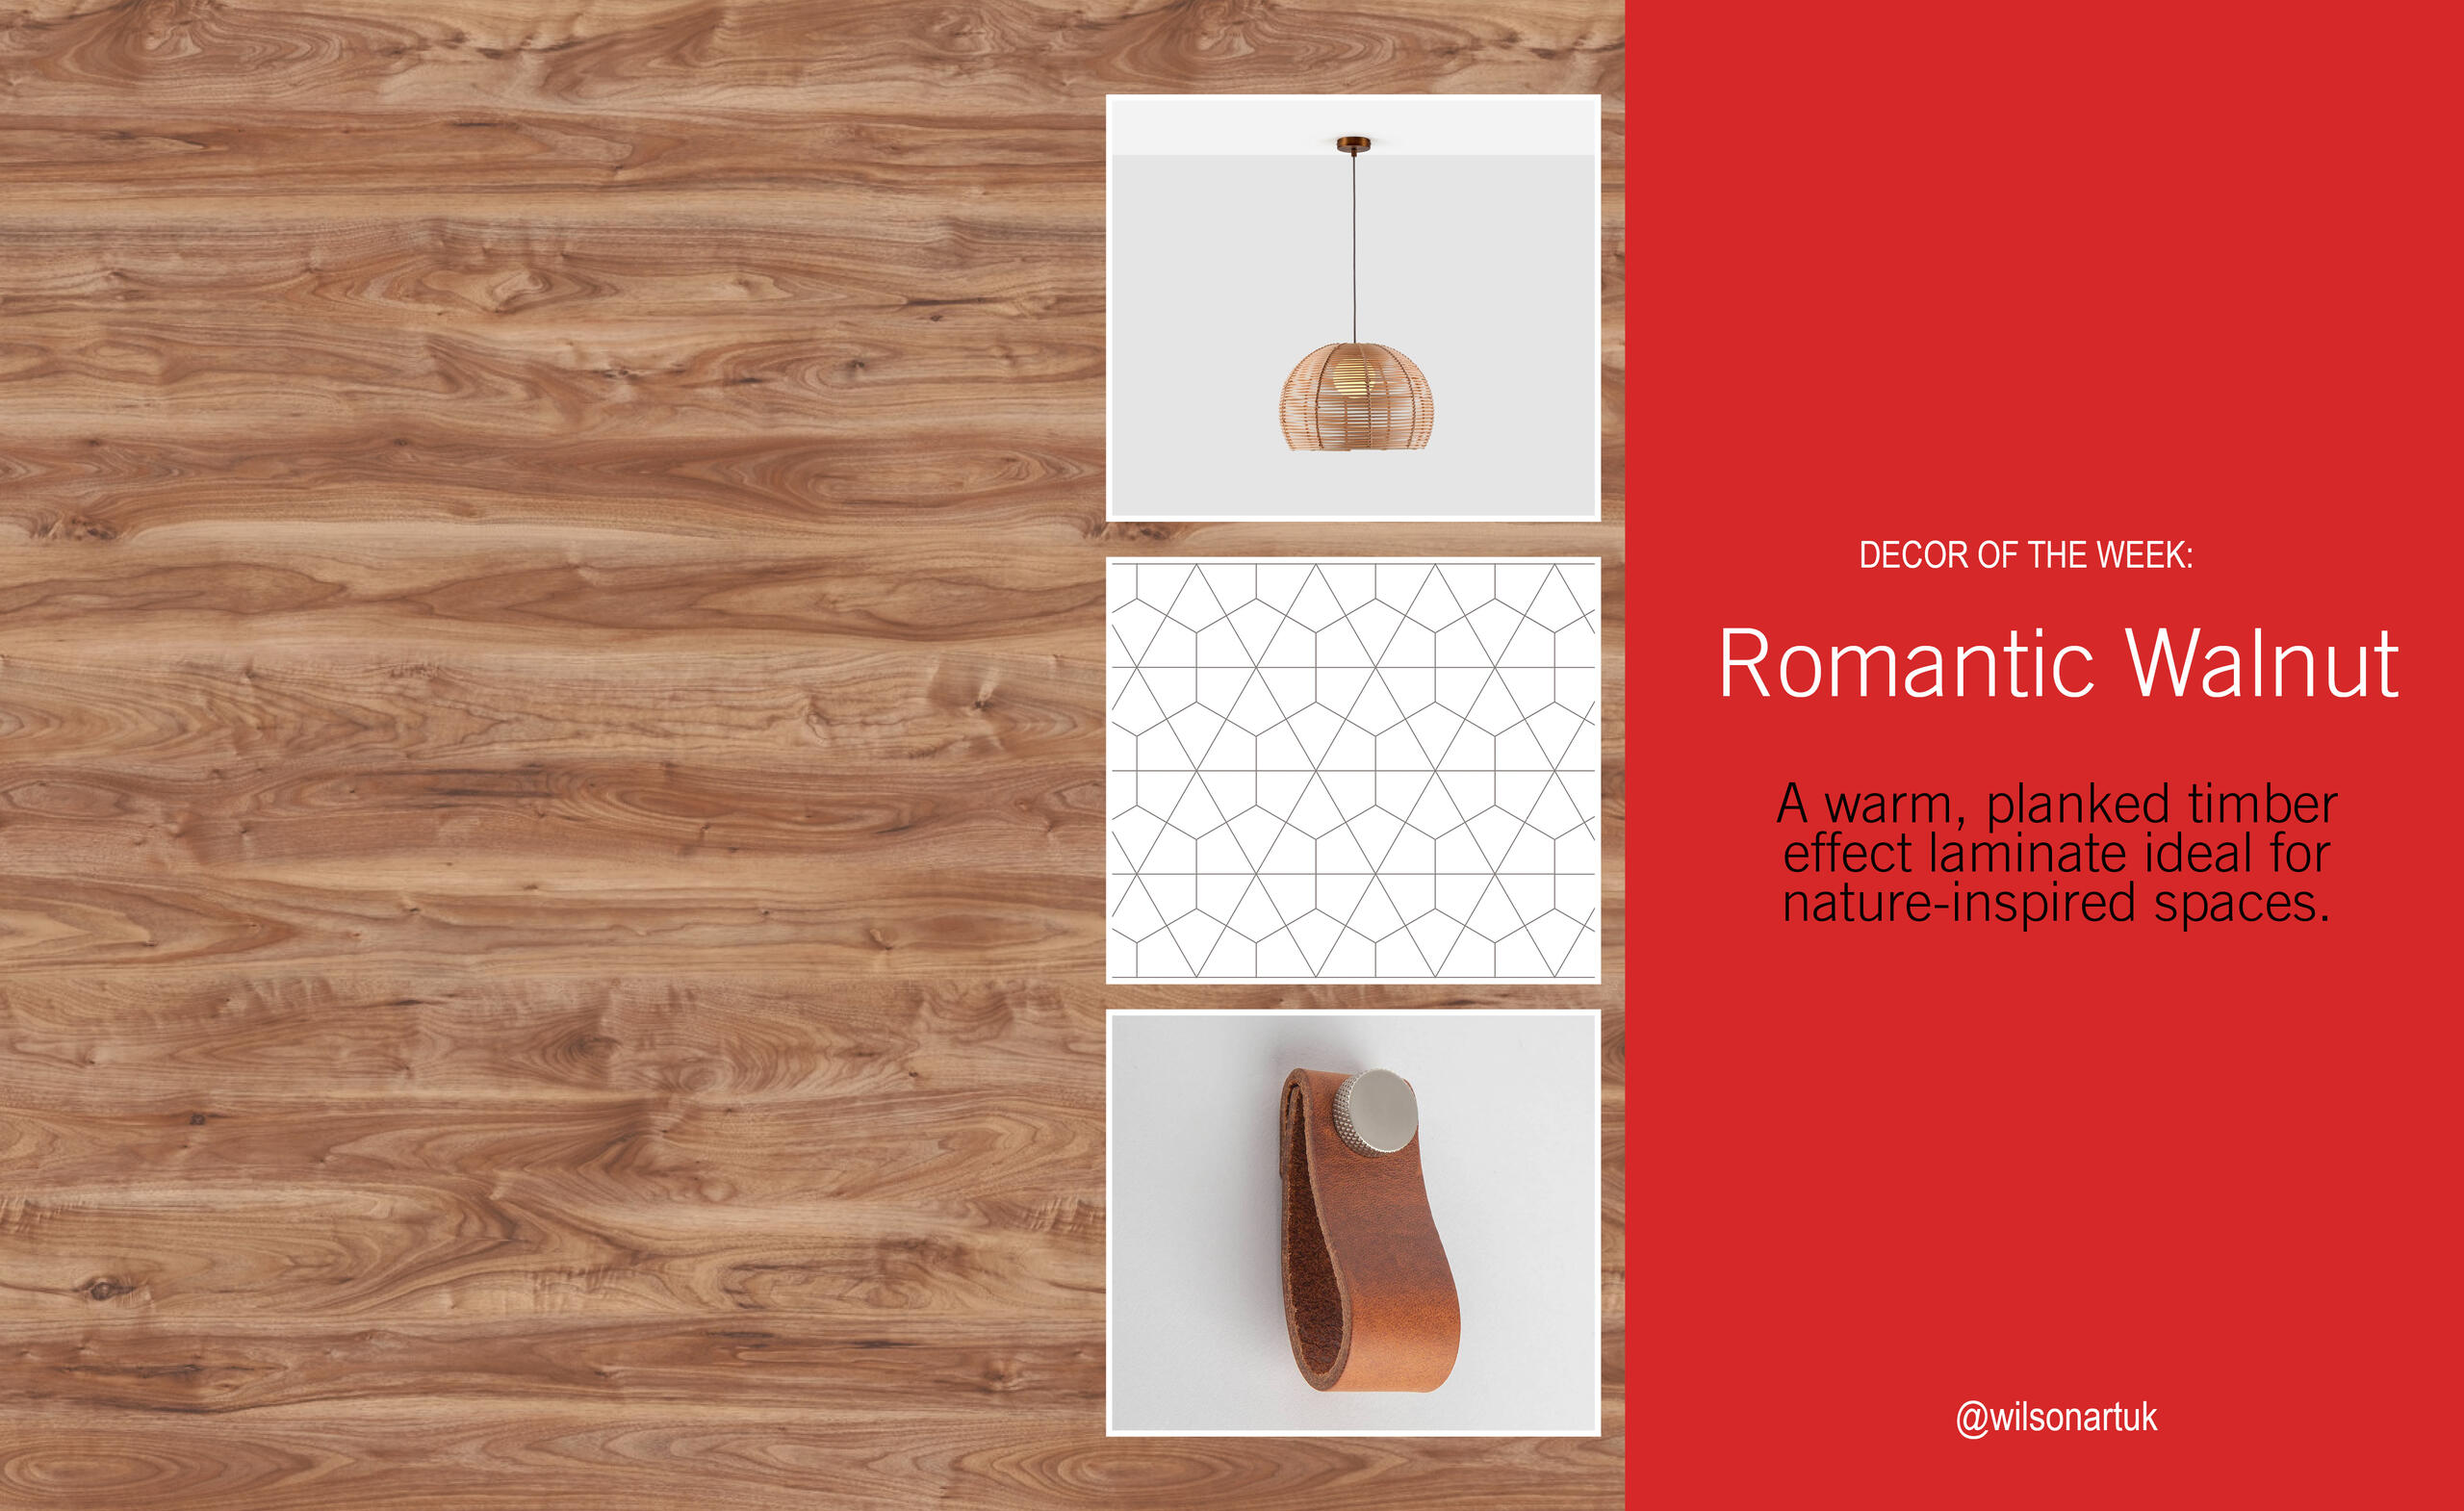 Decor of the Week: Romantic Walnut